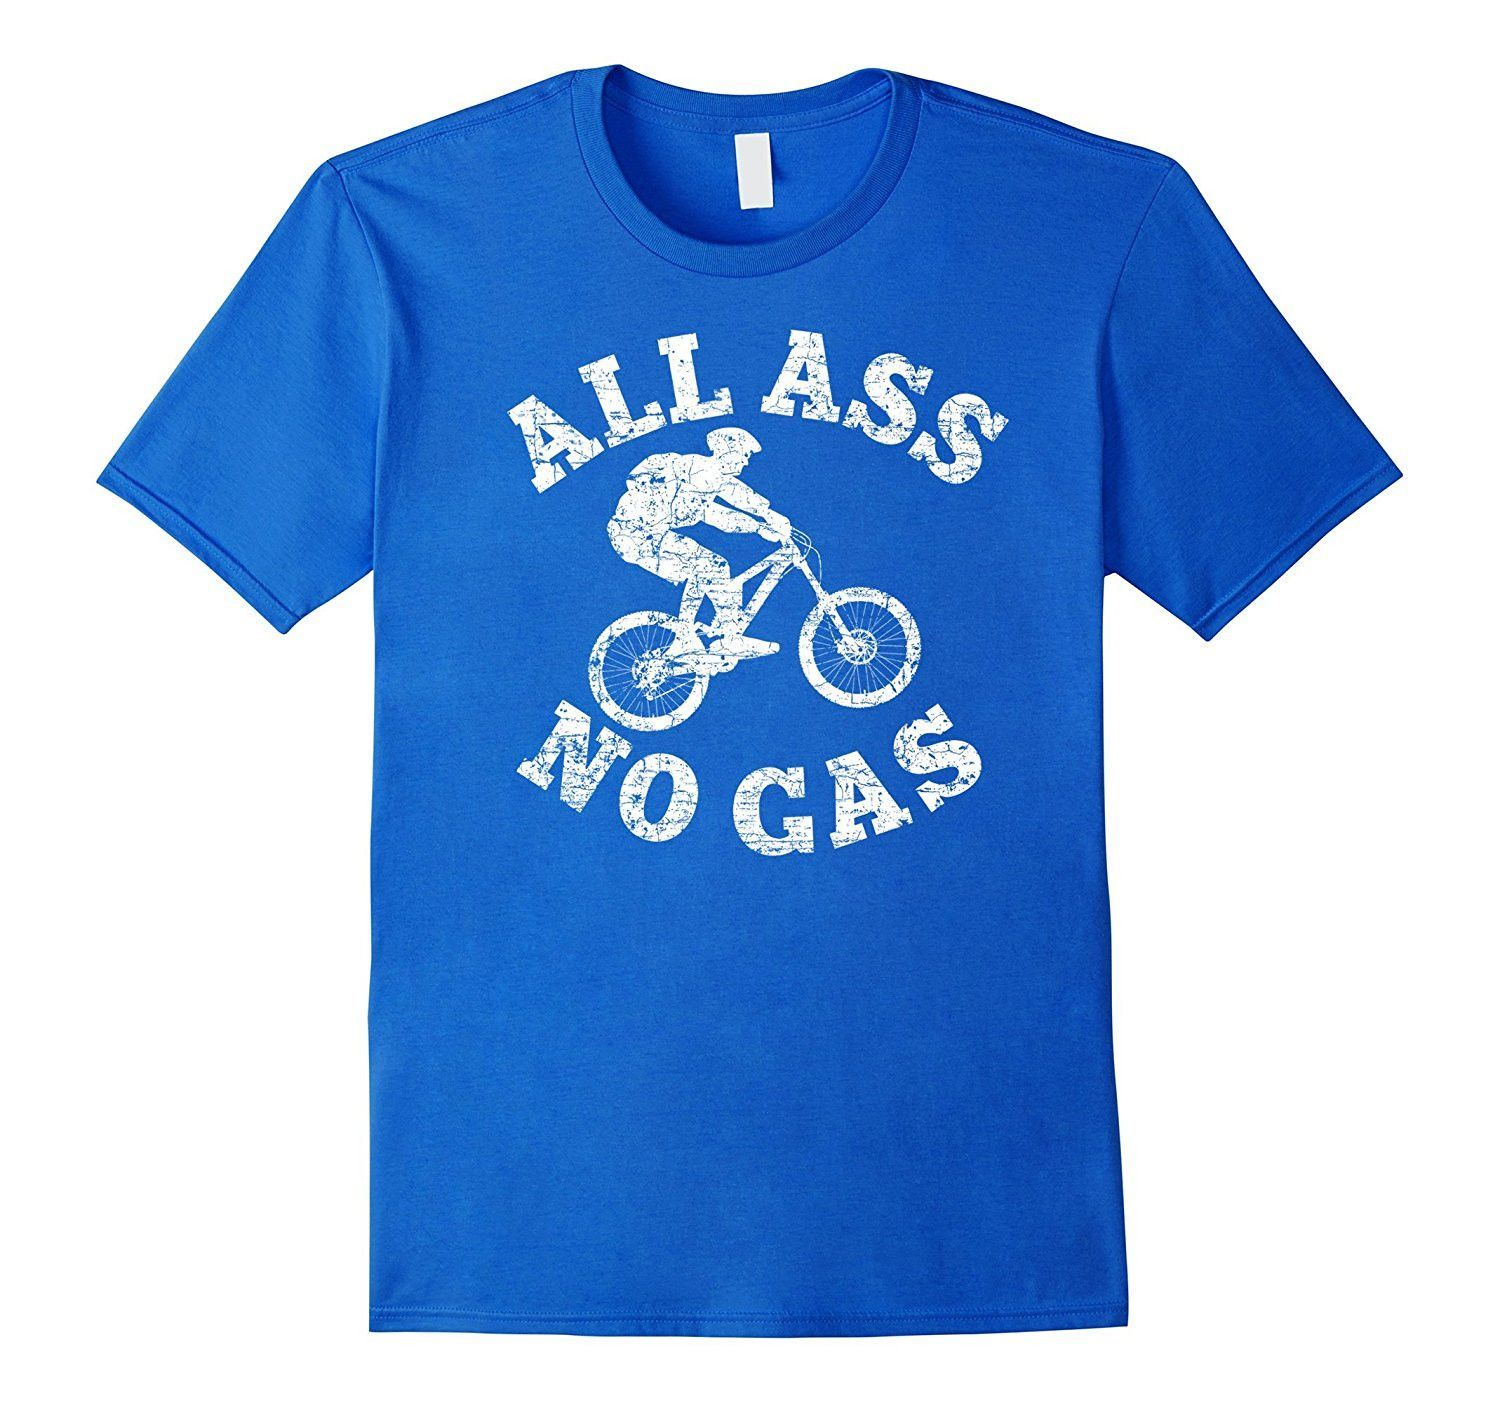 Mountain Bike Shirt: Funny MTB All A. No Gas Rider Gift